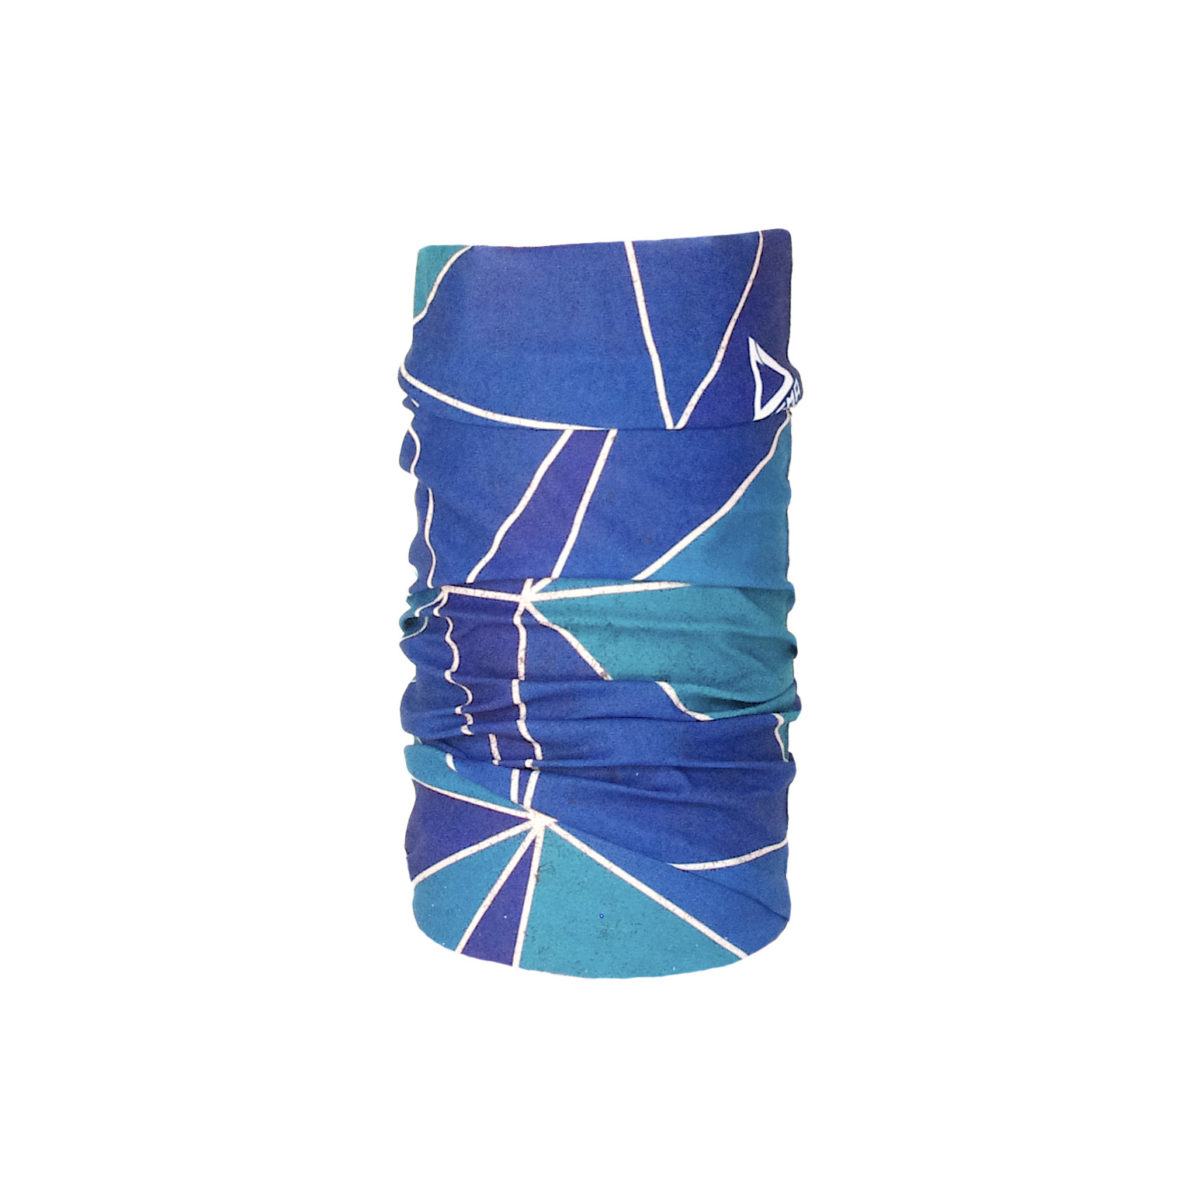 Bandana for all outdoor activities in green and blue color with mosaic pattern